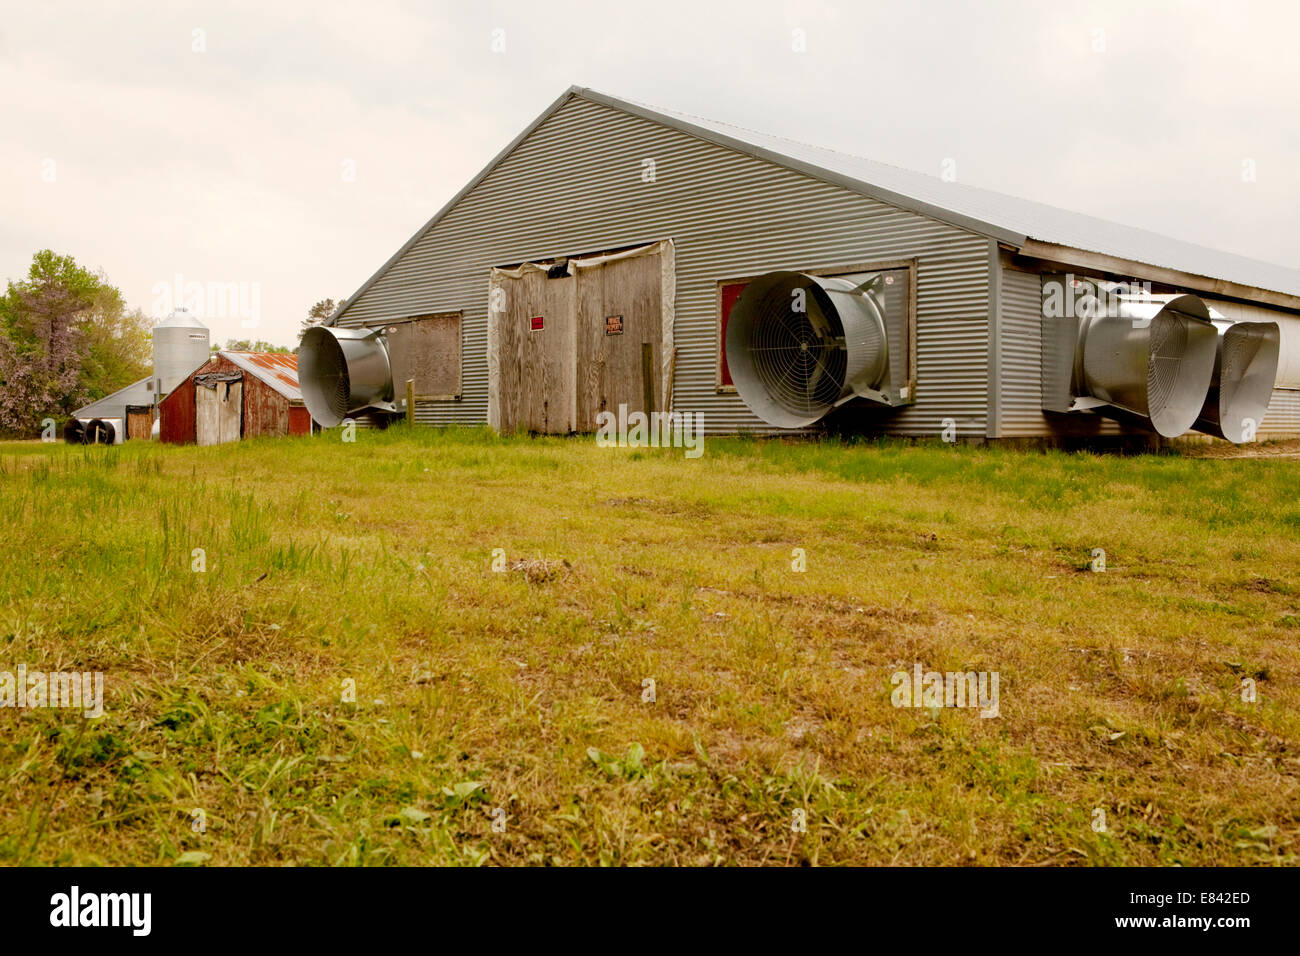 Air conditioning units on industrial farm poultry shed, Eastern Shore, Chesapeake Bay, Maryland, USA - Stock Image